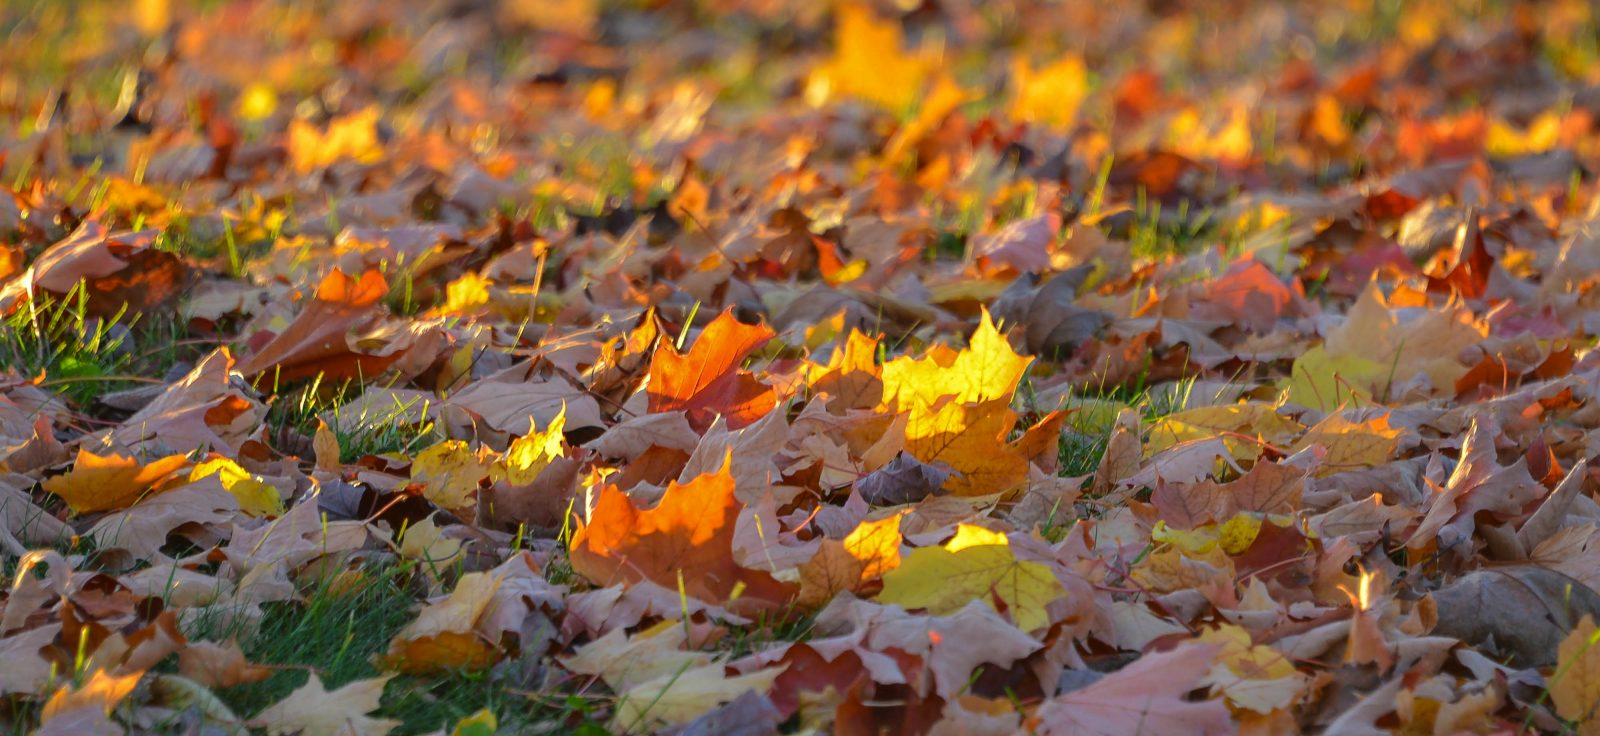 Fallen Leaves At Sunset